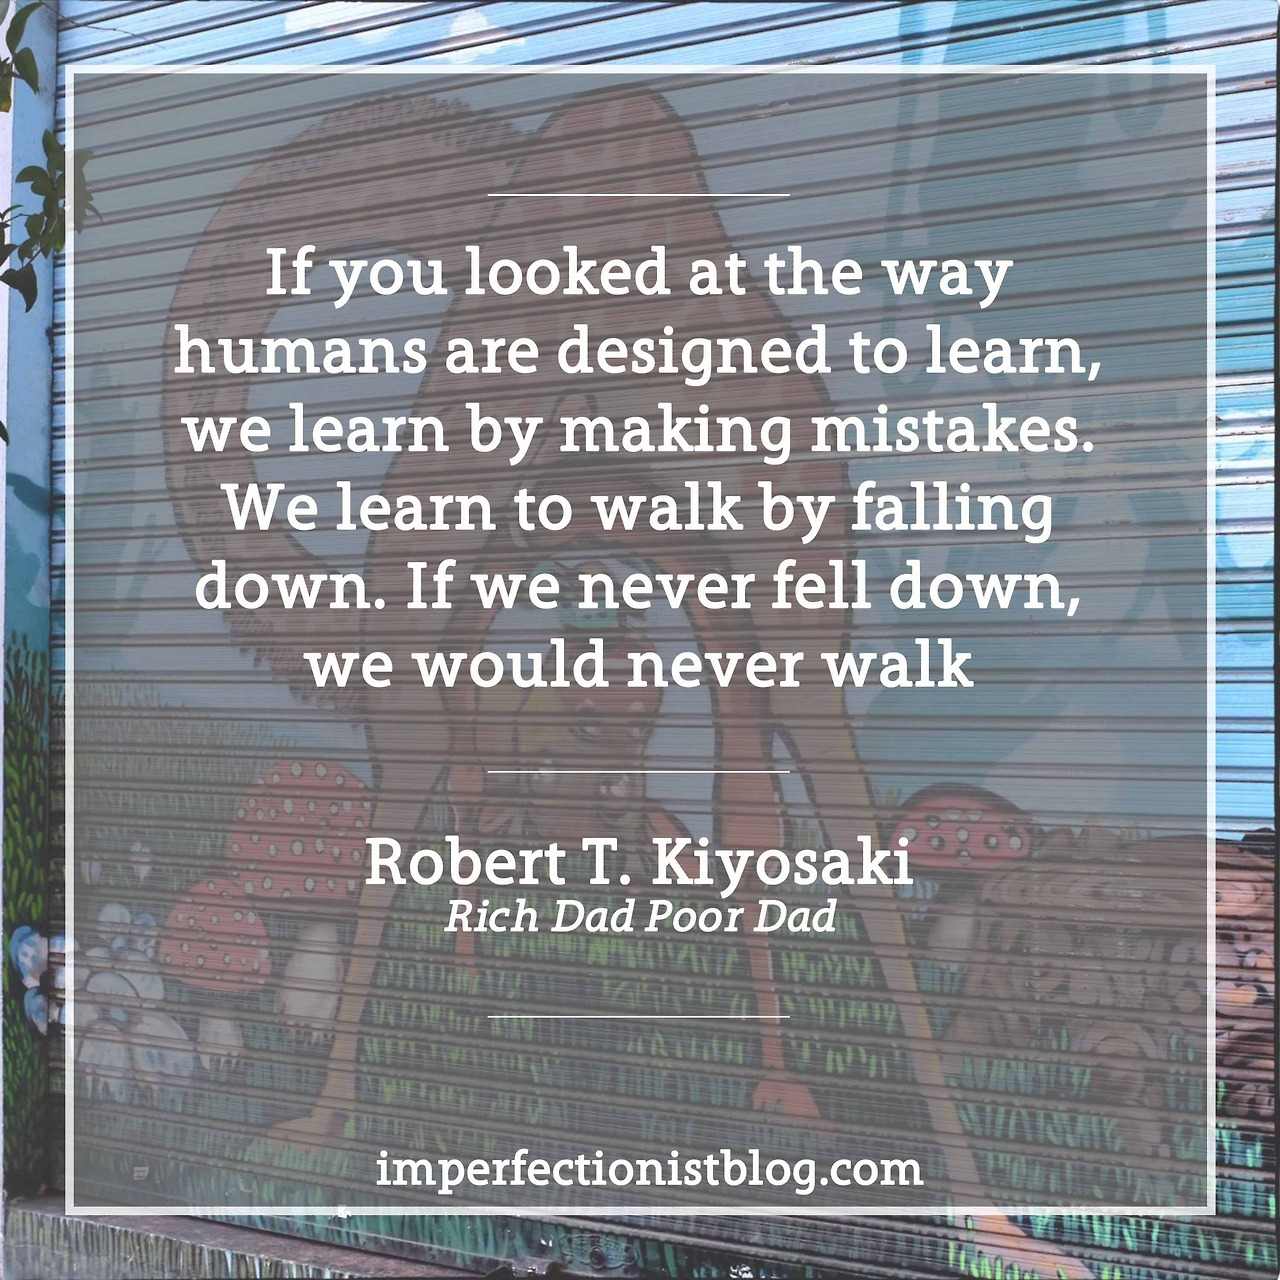 "#346 - ""In school we learn that mistakes are bad, and we are punished for making them. Yet if you looked at the way humans are designed to learn, we learn by making mistakes. We learn to walk my falling down. If we never fell down, we would never walk."" -Robert T. Kiyosaki (Rich Dad Poor Dad)"